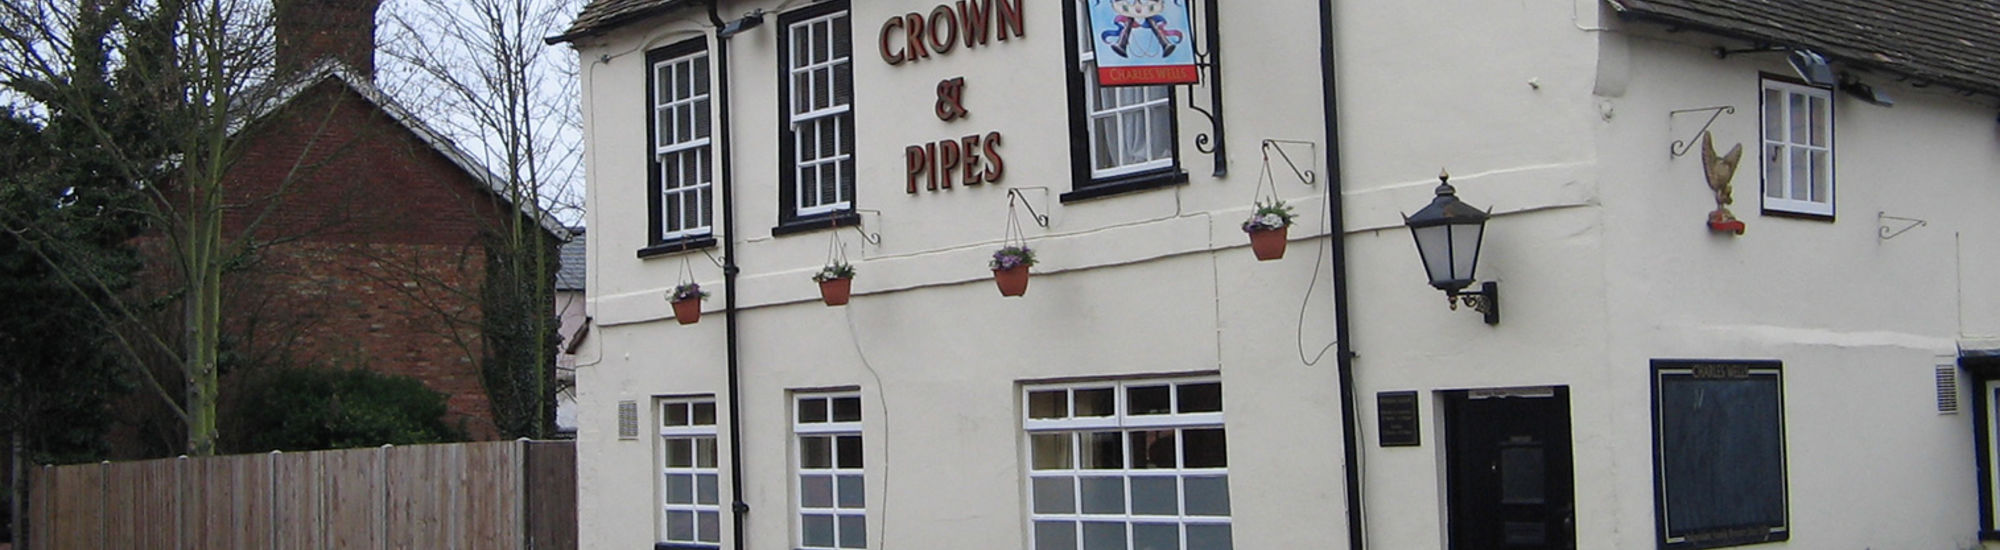 The Crown & Pipes, Huntingdon